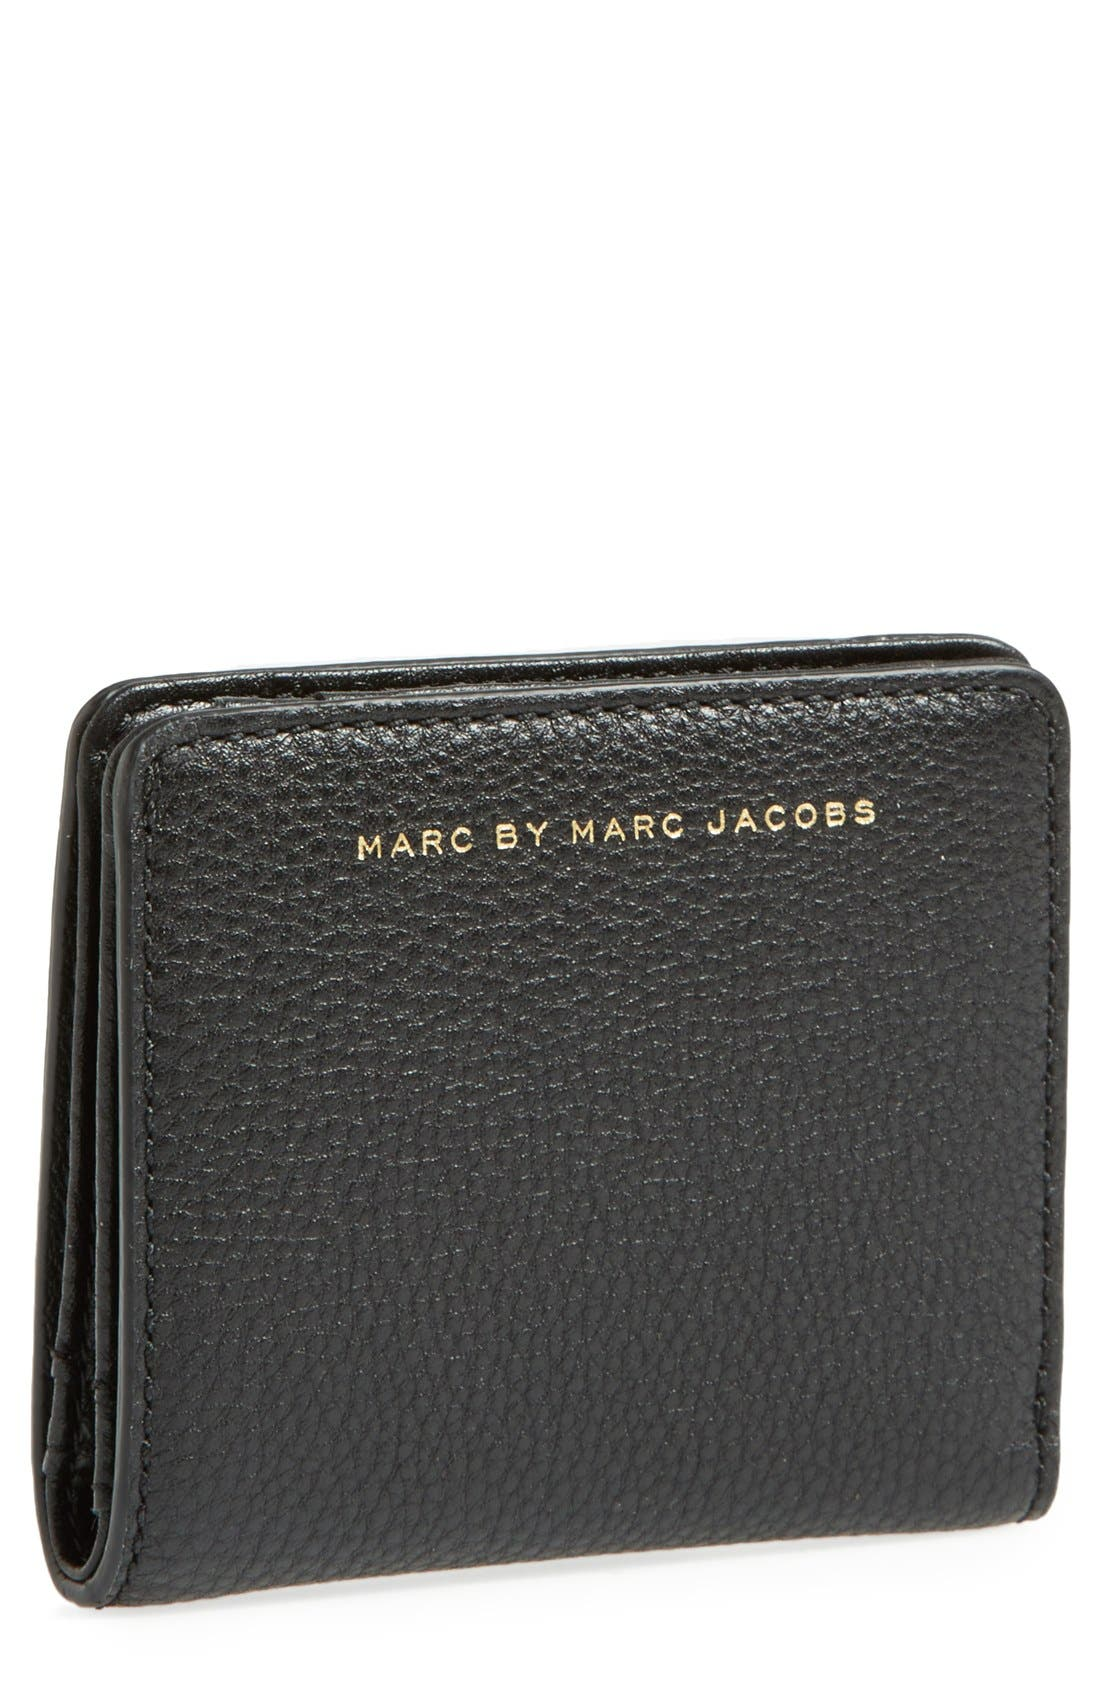 Main Image - MARC BY MARC JACOBS 'Sophisticato Emi' Leather Wallet